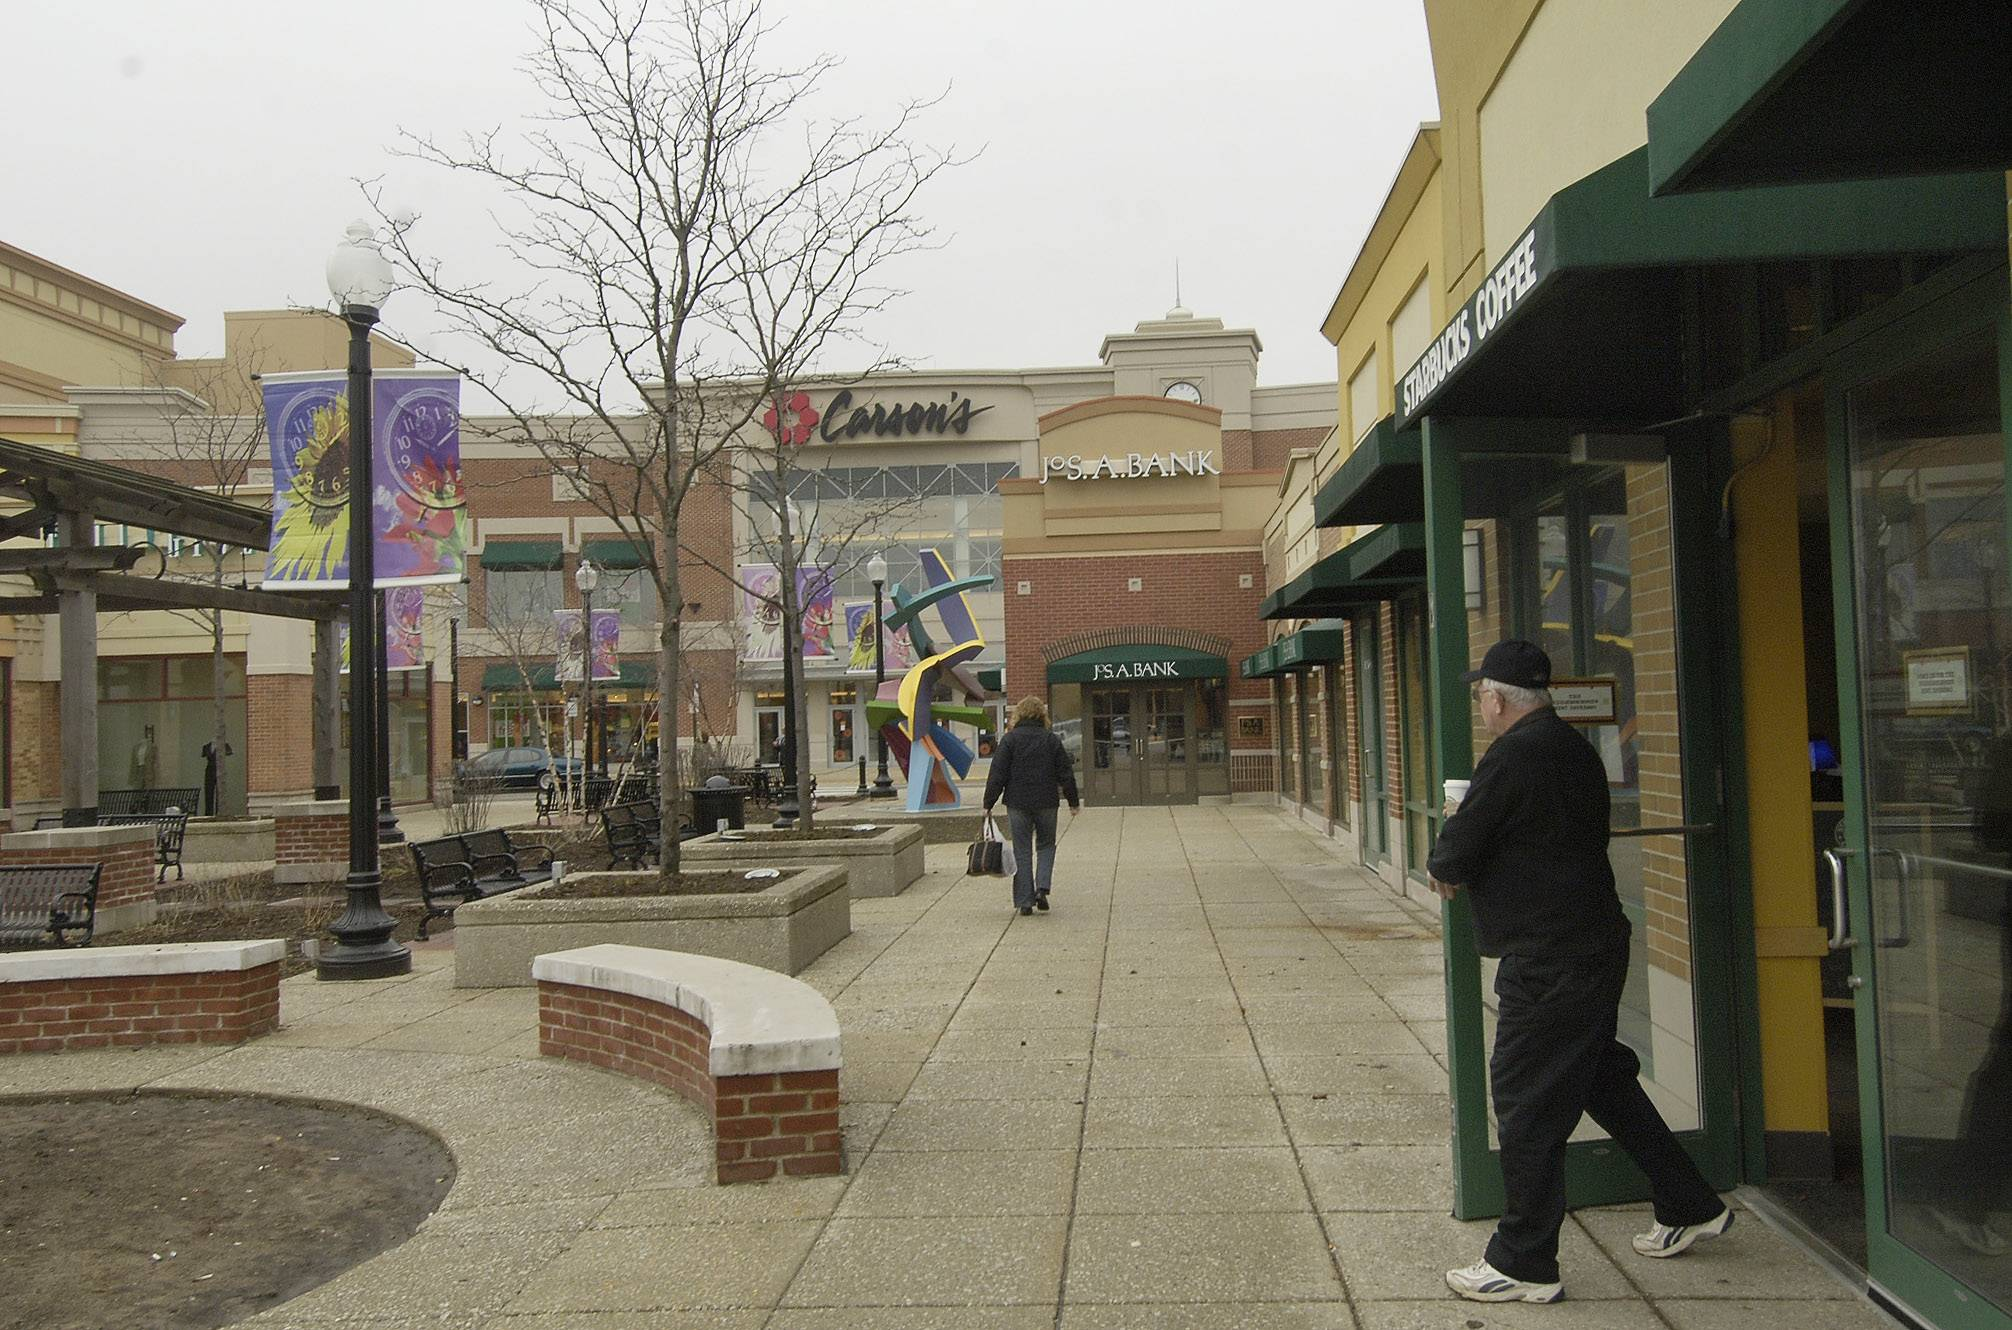 Seven Carsonu0027s Department Stores In Illinois, Including The Location At  Streets Of Woodfield, Will